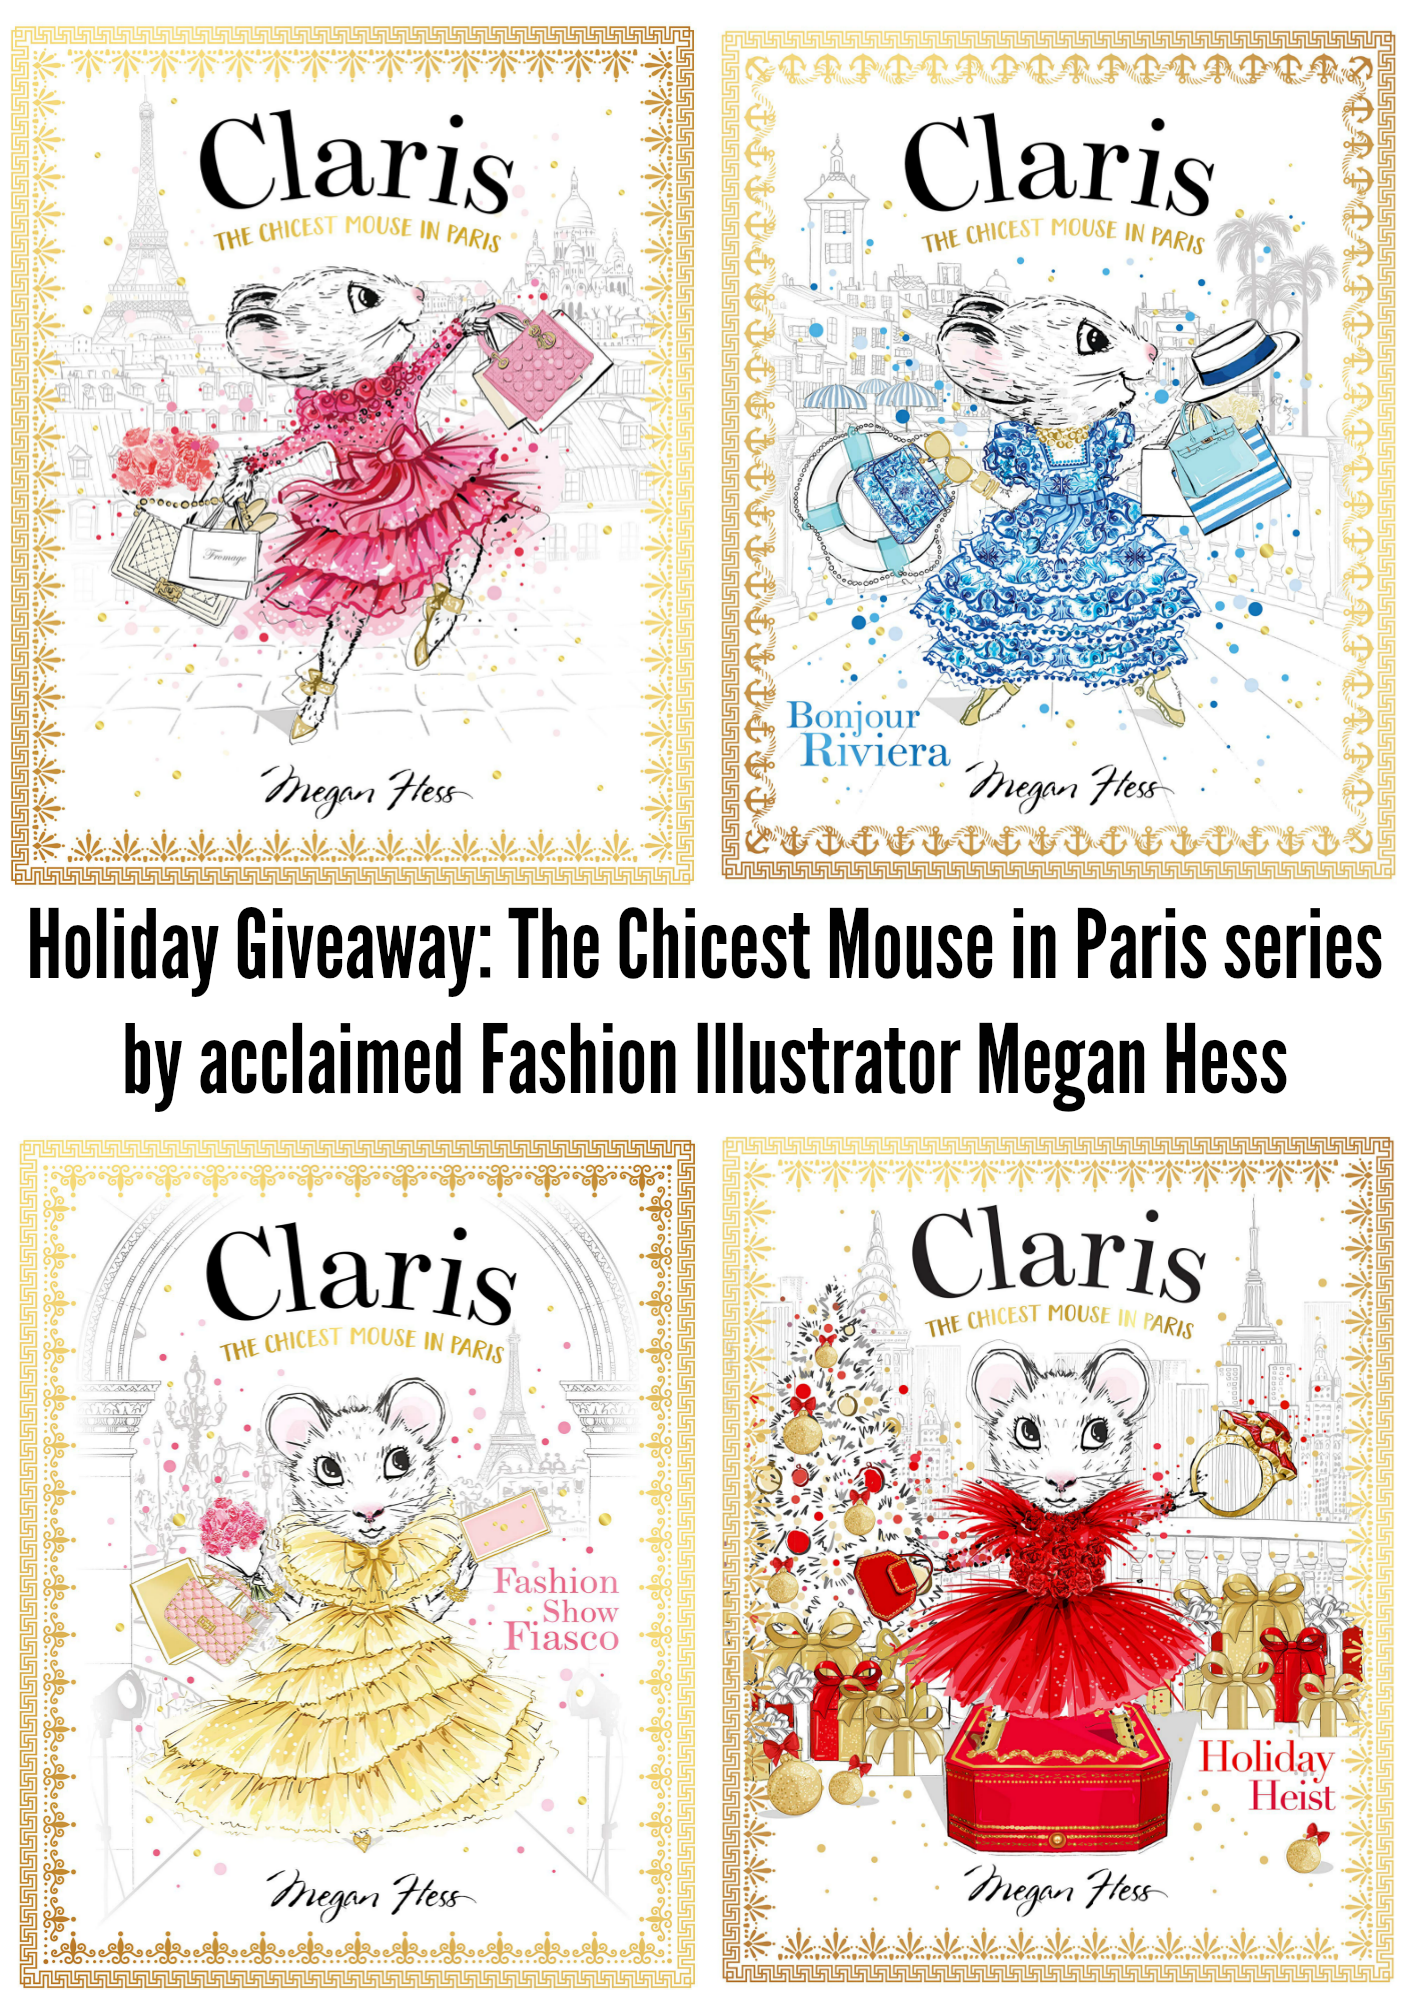 The Chicest Mouse in Paris series